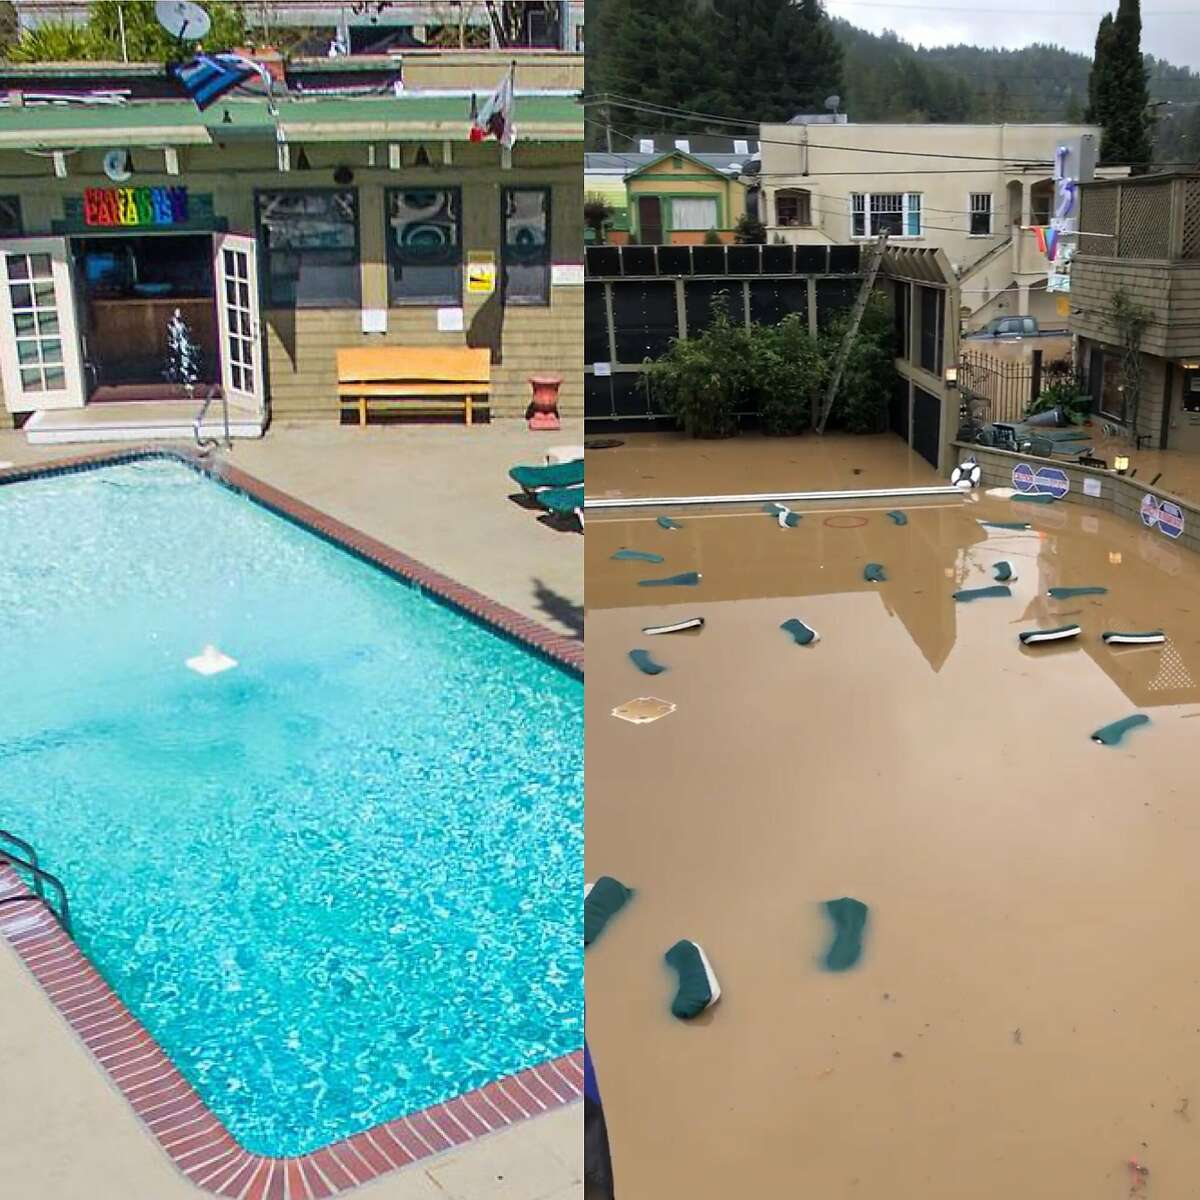 The R3 Hotel in Guerneville was flooded by the Russian River early Wednesday. Guests were evacuated.